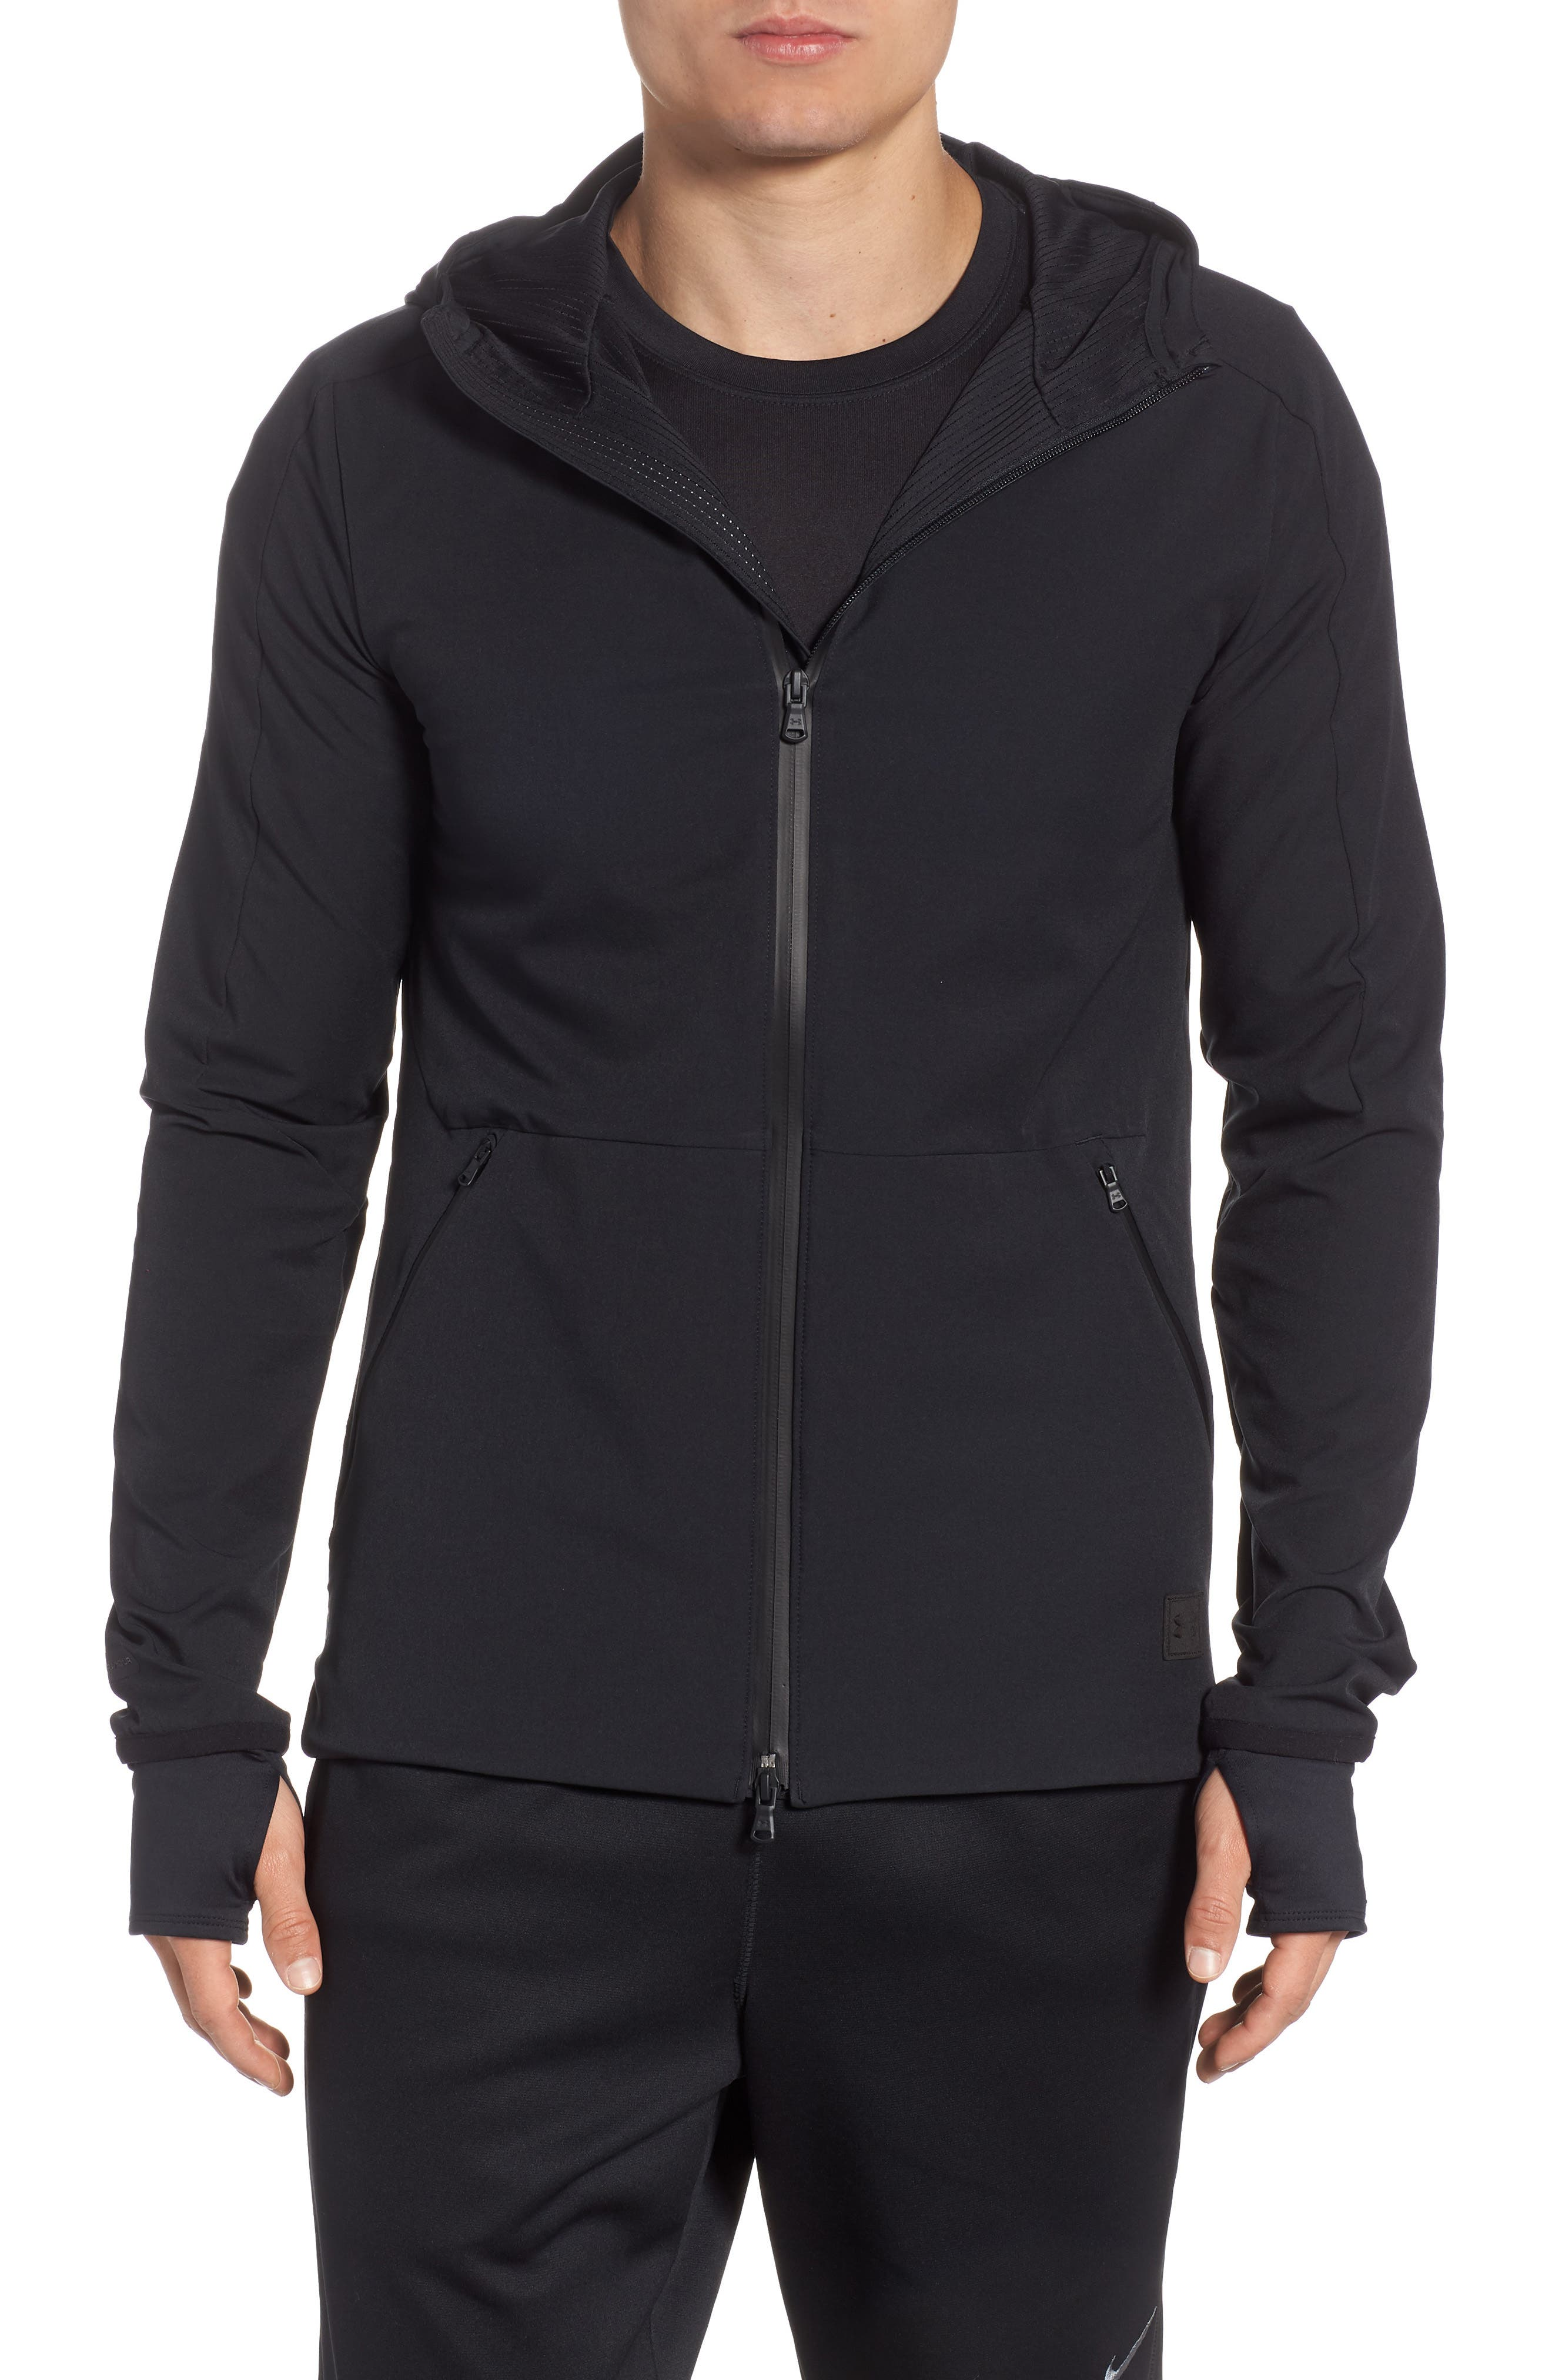 Perpetual Zip Jacket,                             Main thumbnail 1, color,                             001